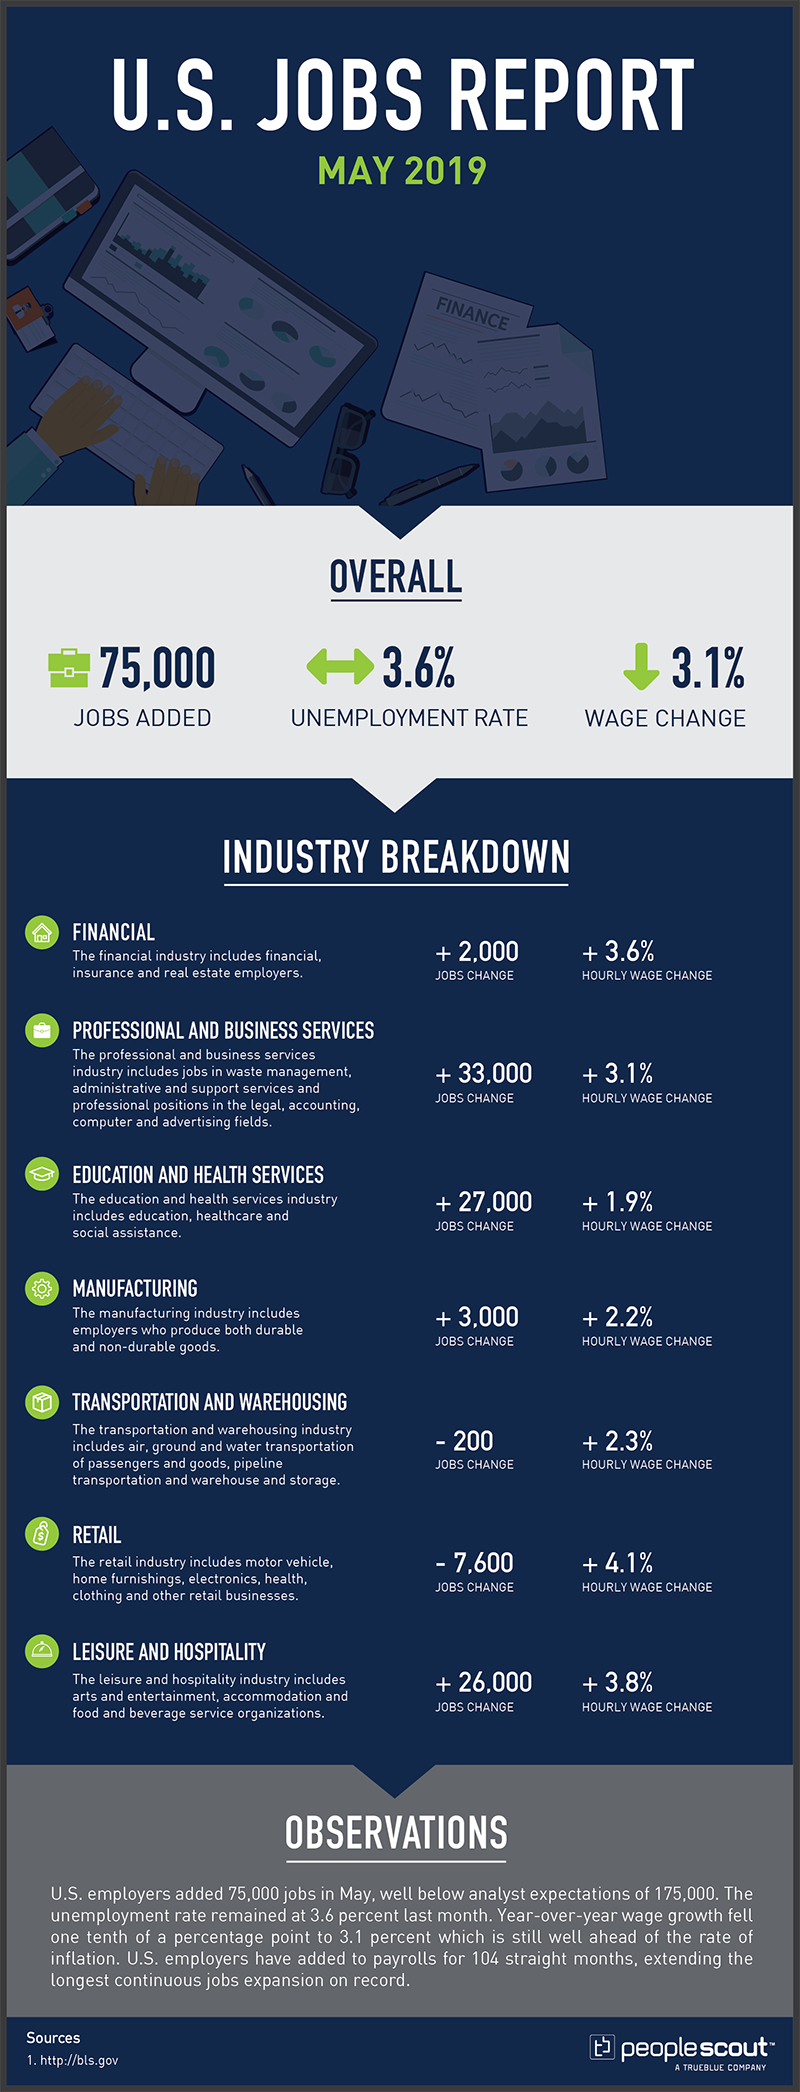 Monthly Jobs Report Data Sheet  May 2019  OVERALL  Overall Jobs Added: +75,000 Overall Unemployment Rate:  3.6% percent (Sideways Arrow) Overall Wage Change: + 3.1 percent (Down Arrow)  INDUSTRY BREAKDOWN  (Table B-1 for Job Changes) (Table B-3 to calculate hourly wage change)  Financial Description of Industry: The financial industry includes financial, insurance and real estate employers. Jobs Change: +2,000 Hourly Wage Change: +3.6 percent  Manufacturing Description of Industry: The manufacturing industry includes employers who produce both durable and non-durable goods. Jobs Change: +3,000 Hourly Wage Change: +2.2 percent  Transportation and Warehousing Description of Industry: The transportation and warehousing industry includes air, ground and water transportation of passengers and goods, pipeline transportation and warehouse and storage. Jobs Change: -200 Hourly Wage Change: +2.3 percent  Retail Description of Industry Category: The retail industry includes motor vehicle, home furnishings, electronics, health, clothing and other retail businesses. Jobs Change: -7,600 Hourly Wage Change: +4.1 percent  Education and Health Services Description of Industry Category: The education and health services industry includes education, healthcare and social assistance. Jobs Change: +27,000 Hourly Wage Change: +1.9 percent    Leisure and Hospitality Description of Industry Category: The leisure and hospitality industry includes arts and entertainment, accommodation and food and beverage service organizations. Jobs Change: +26,000 Hourly Wage Change: +3.8 percent   Professional and Business Services Description of Industry Category: The professional and business services industry includes jobs in waste management, administrative and support services and professional positions in the legal, accounting, computer and advertising fields. Jobs Change: +33,000 Hourly Wage Change: +3.1 percent  Observations  U.S. employers added 75,000 jobs in May, well below analyst expectations of 175,000. The unemployment rate remained at 3.6 percent last month. Year-over-year wage growth fell one tenth of a percentage point to 3.1 percent which is still well ahead of the rate of inflation. U.S. employers have added to payrolls for 104 straight months, extending the longest continuous jobs expansion on record.